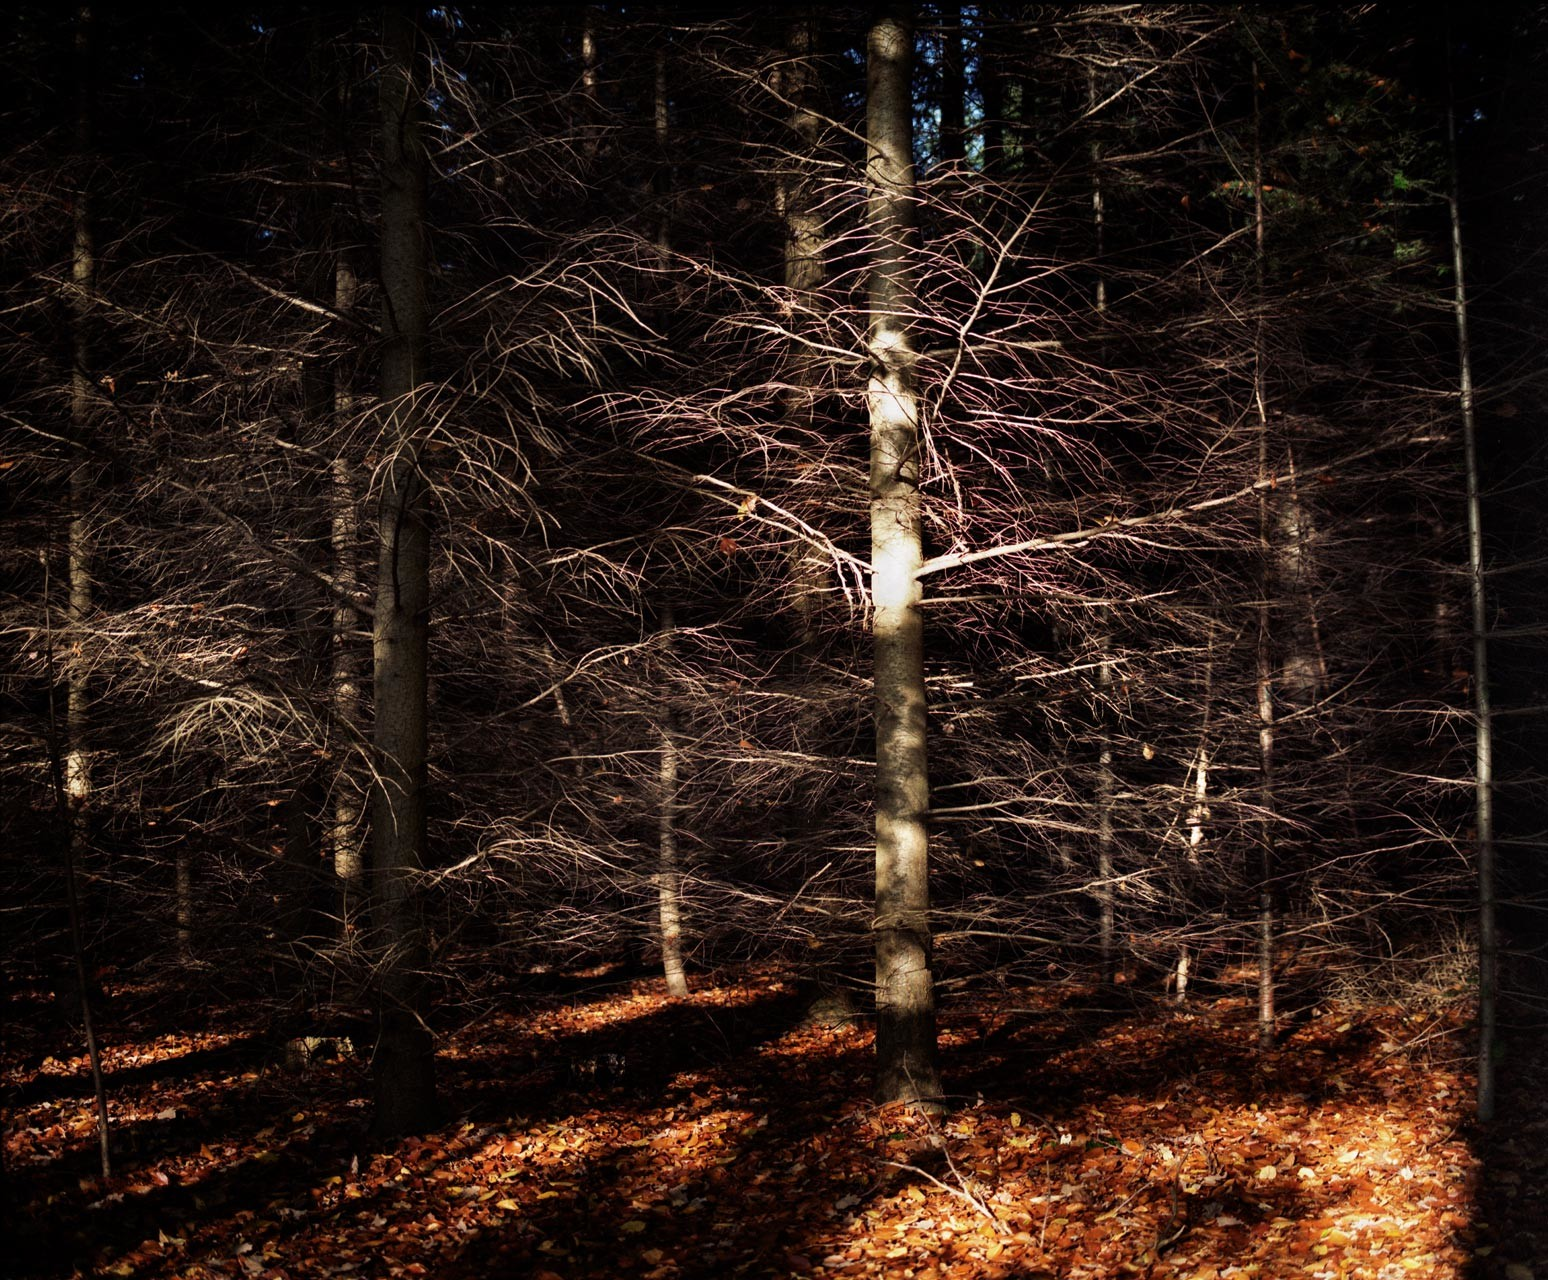 timo-stammberger-photography-forest-trees-sunny